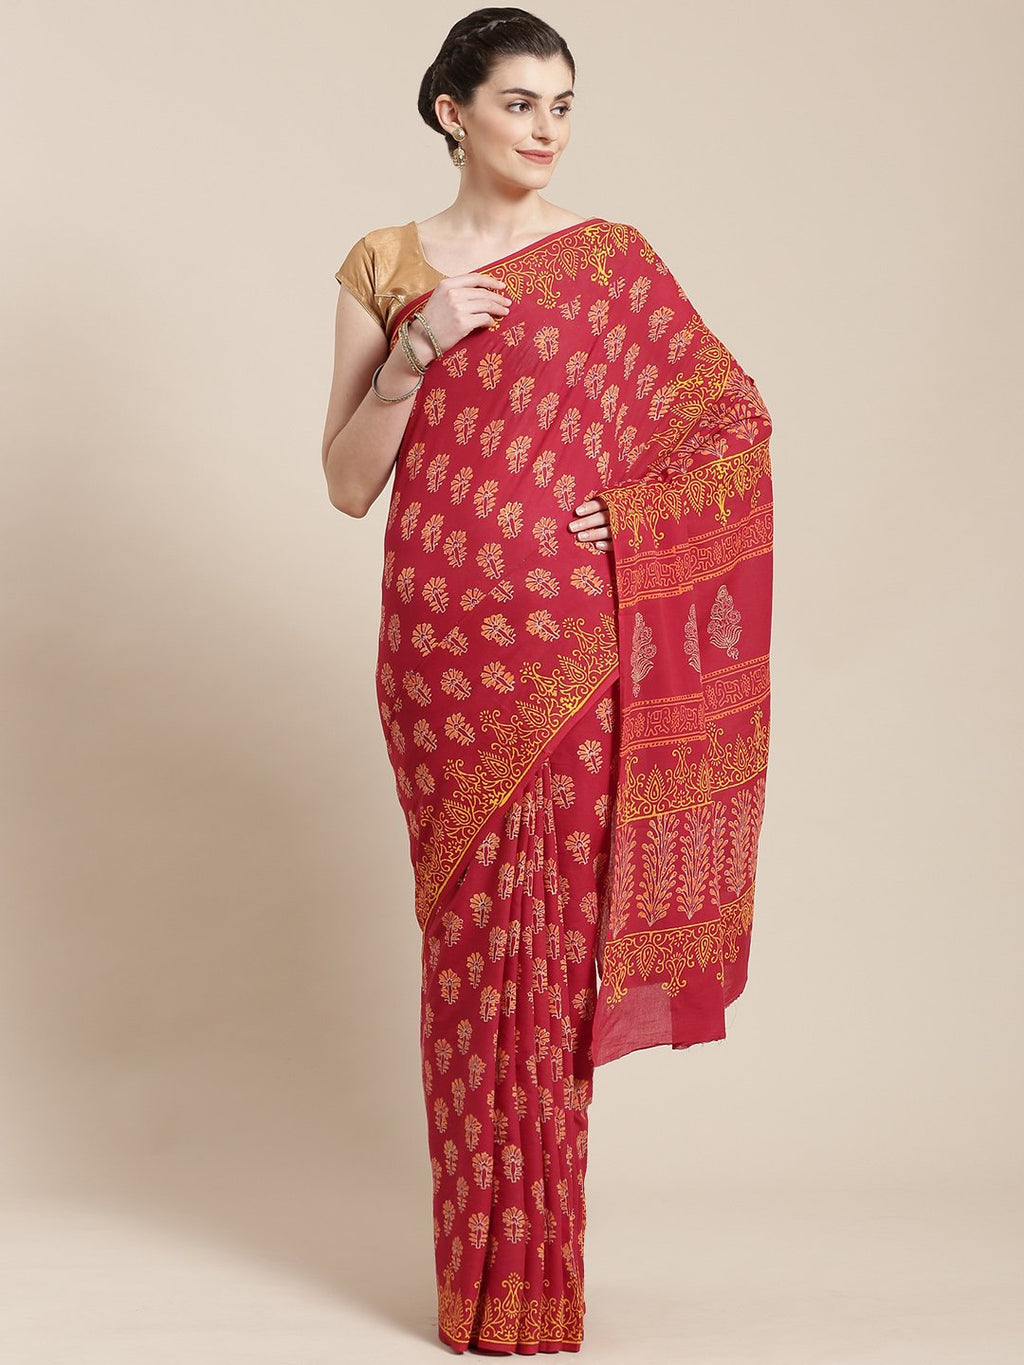 Burgundy Handblock Print Saree-Saree-Kalakari India-BHKPSA0103-Cotton, Geographical Indication, Hand Blocks, Hand Crafted, Heritage Prints, Sanganeri, Sarees, Sustainable Fabrics-[Linen,Ethnic,wear,Fashionista,Handloom,Handicraft,Indigo,blockprint,block,print,Cotton,Chanderi,Blue, latest,classy,party,bollywood,trendy,summer,style,traditional,formal,elegant,unique,style,hand,block,print, dabu,booti,gift,present,glamorous,affordable,collectible,Sari,Saree,printed, holi, Diwali, birthday, anniversa